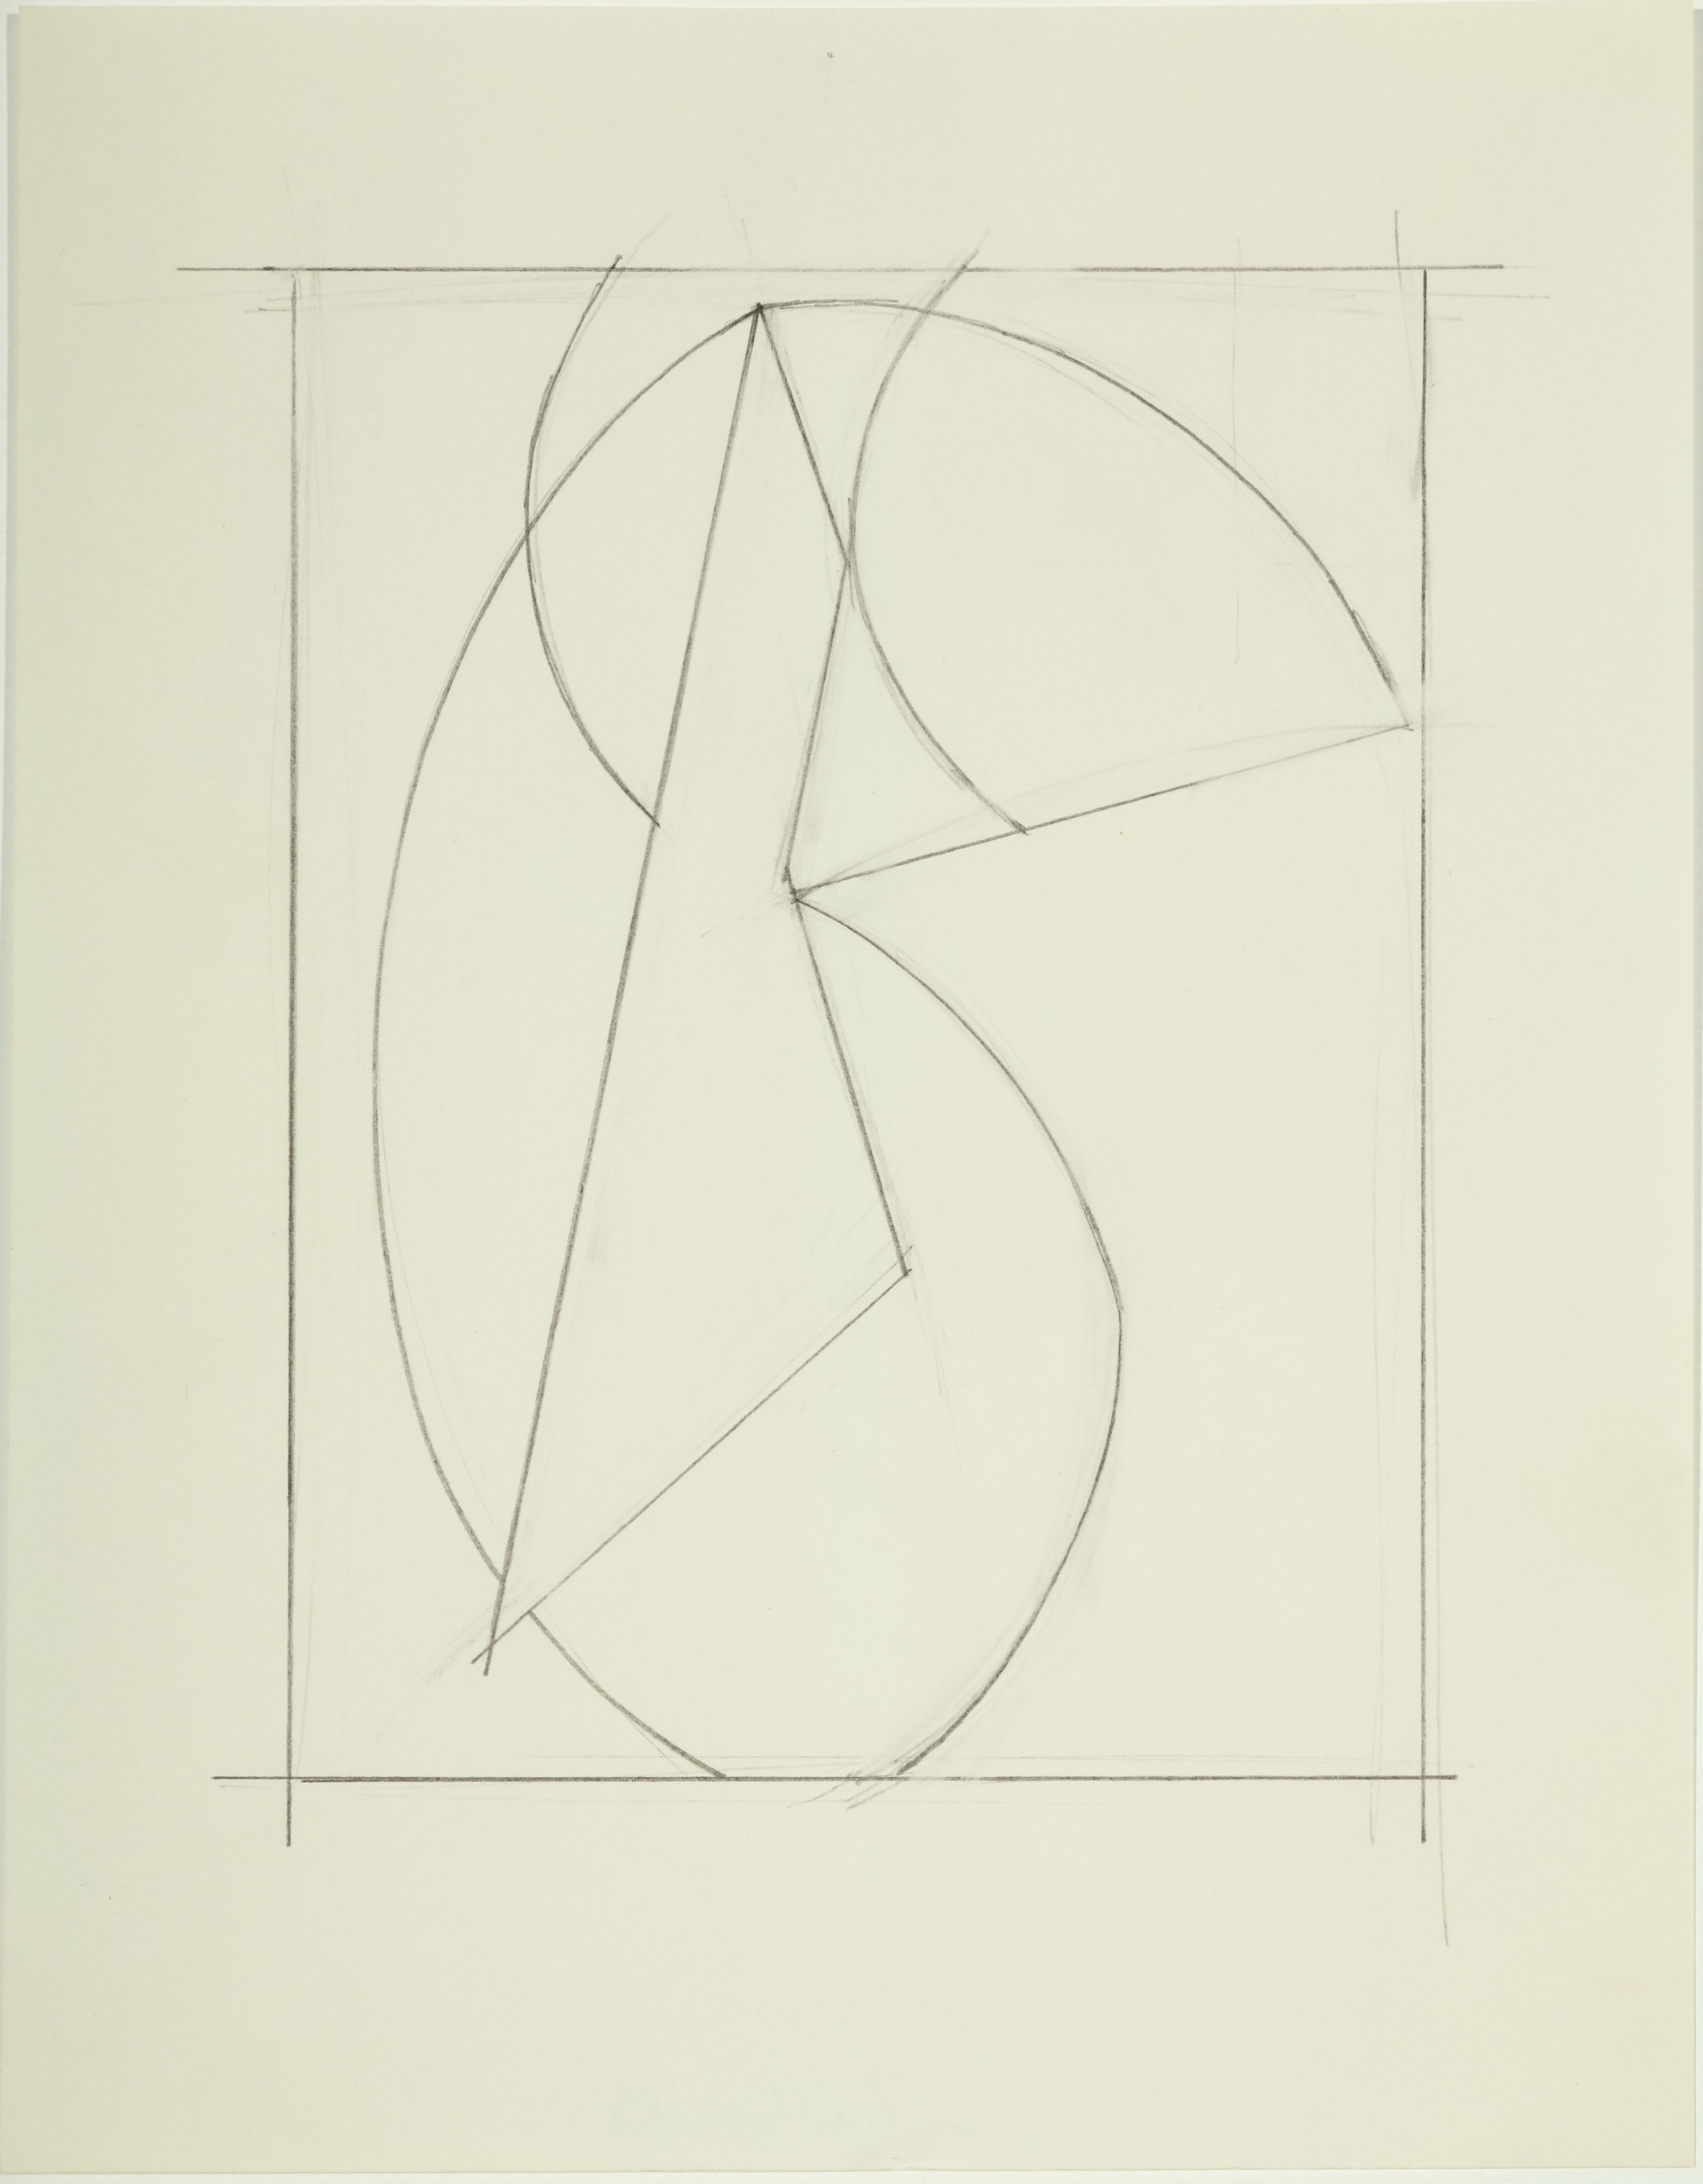 Untitled , 1983 Pencil on paper 11H x 8.50W inches